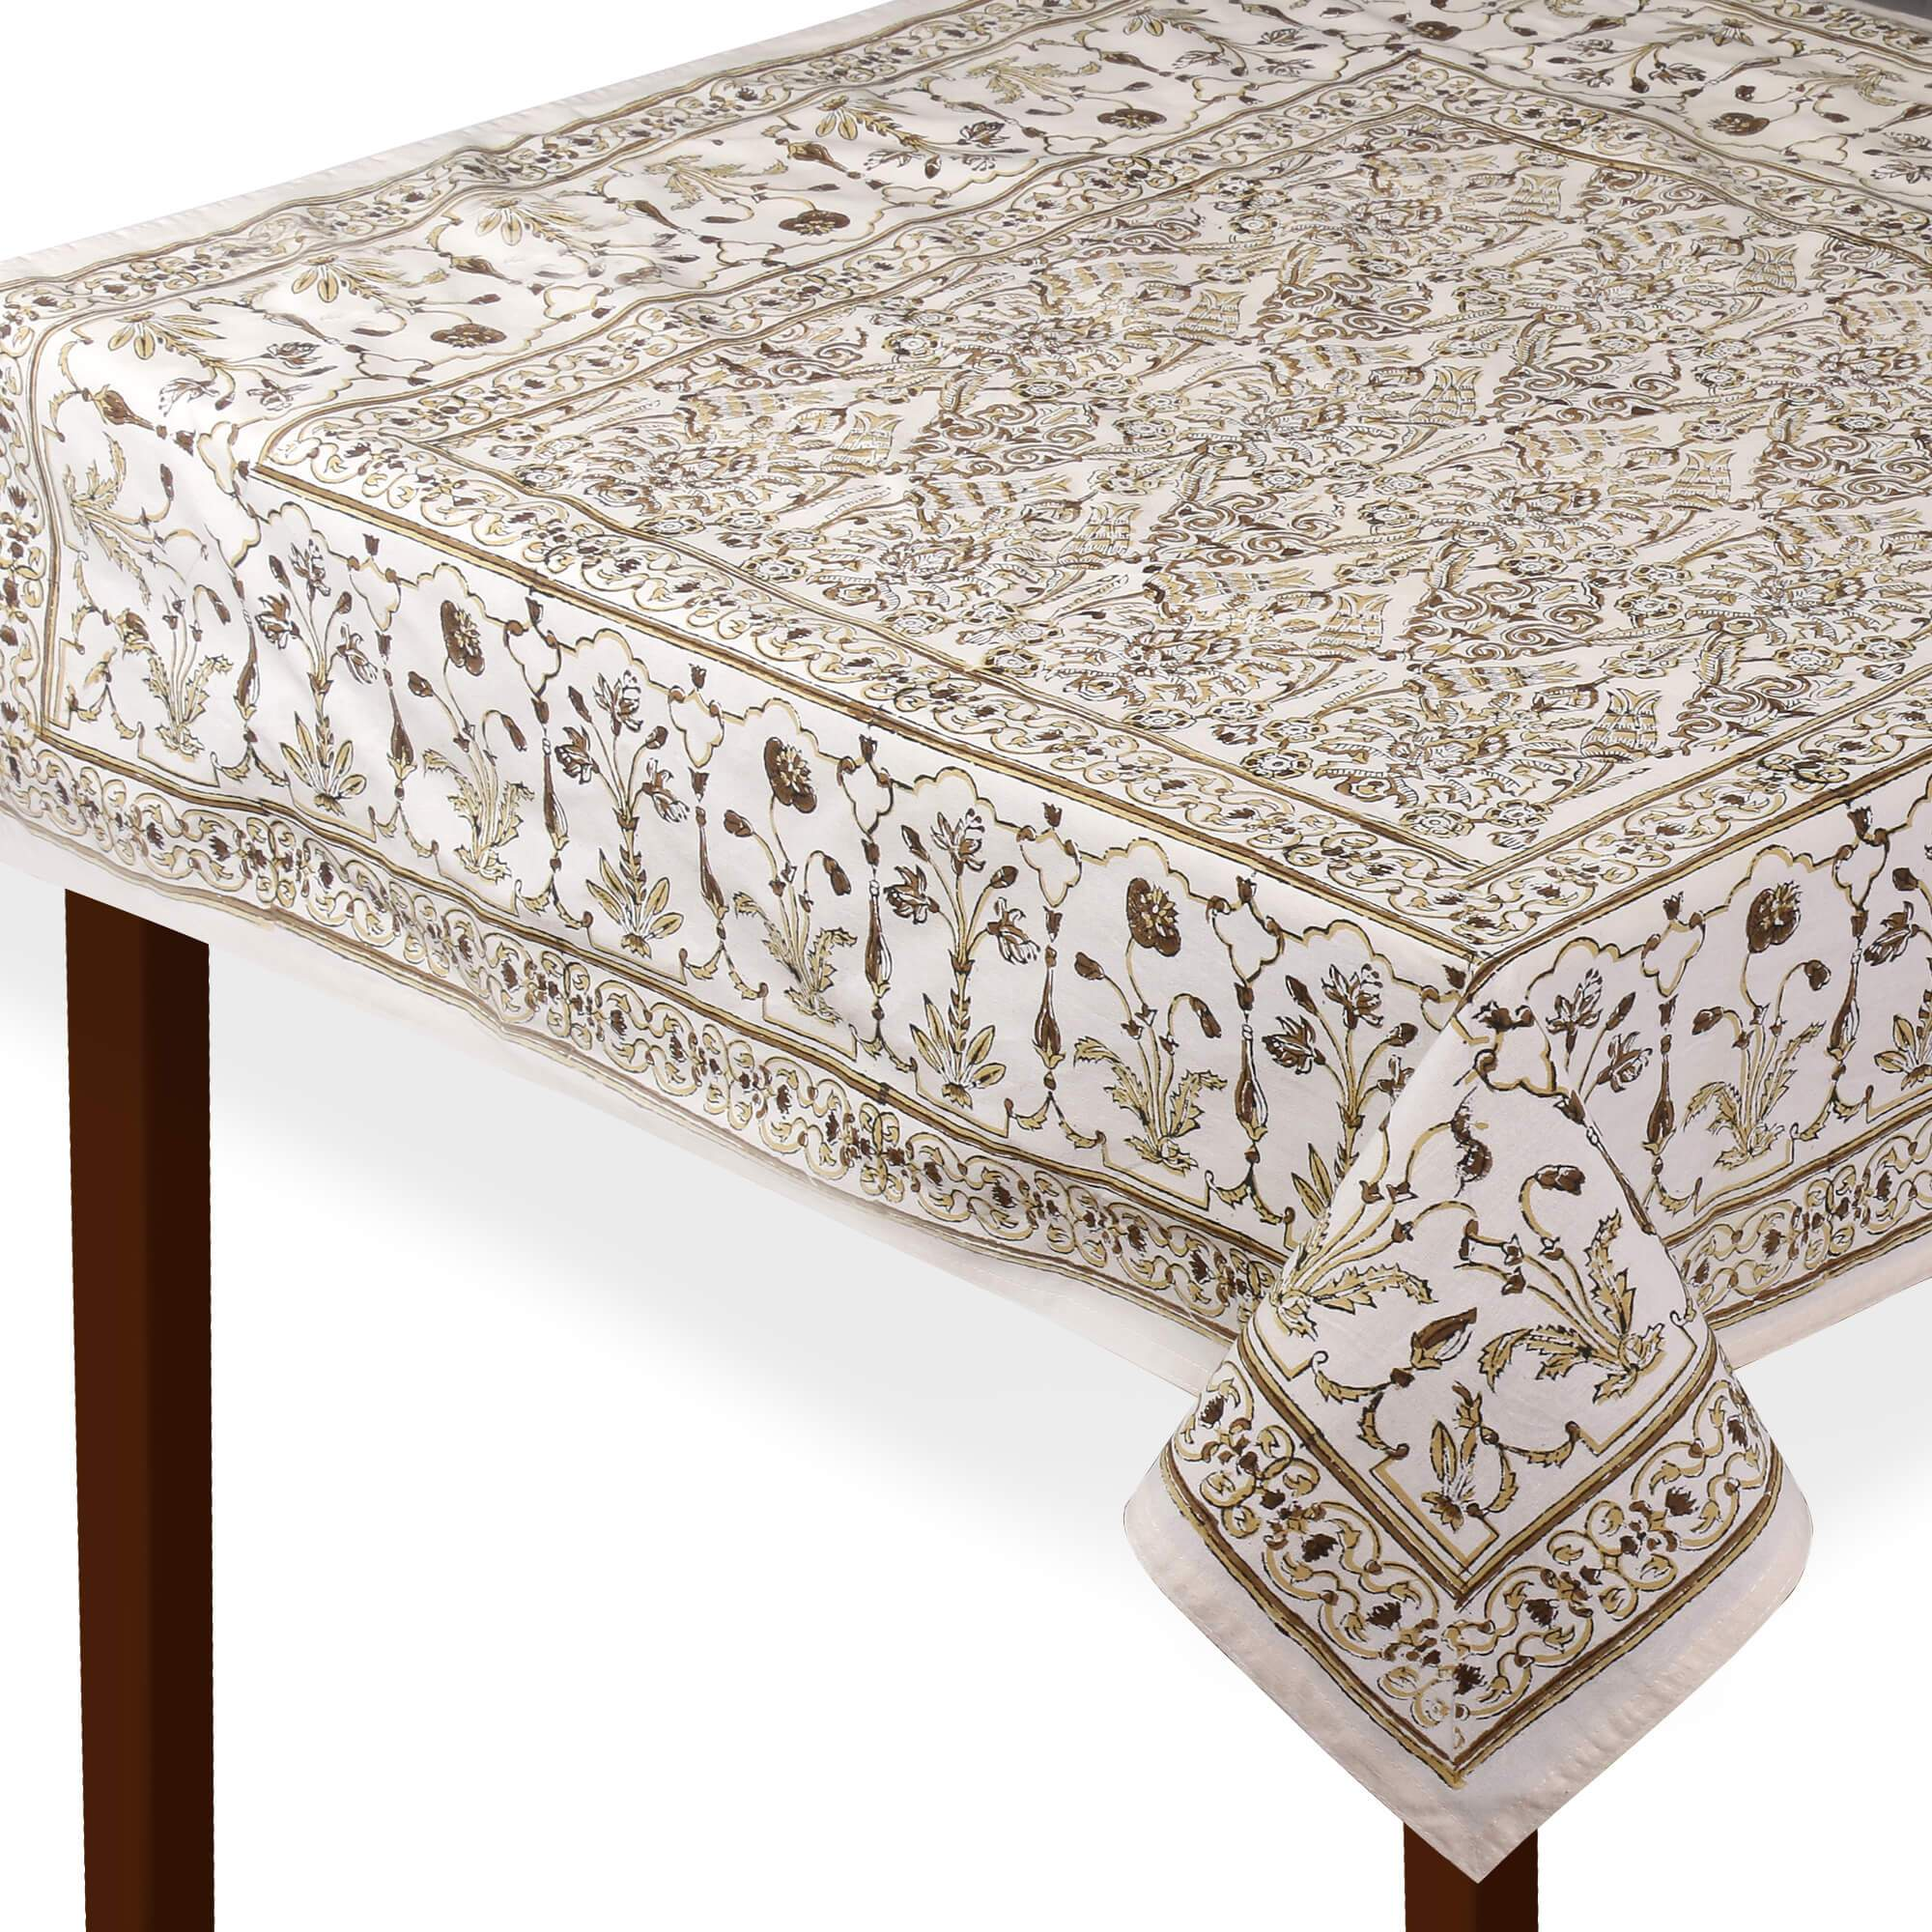 Jaipuri 6 Seater Cotton Table Cover - 7964